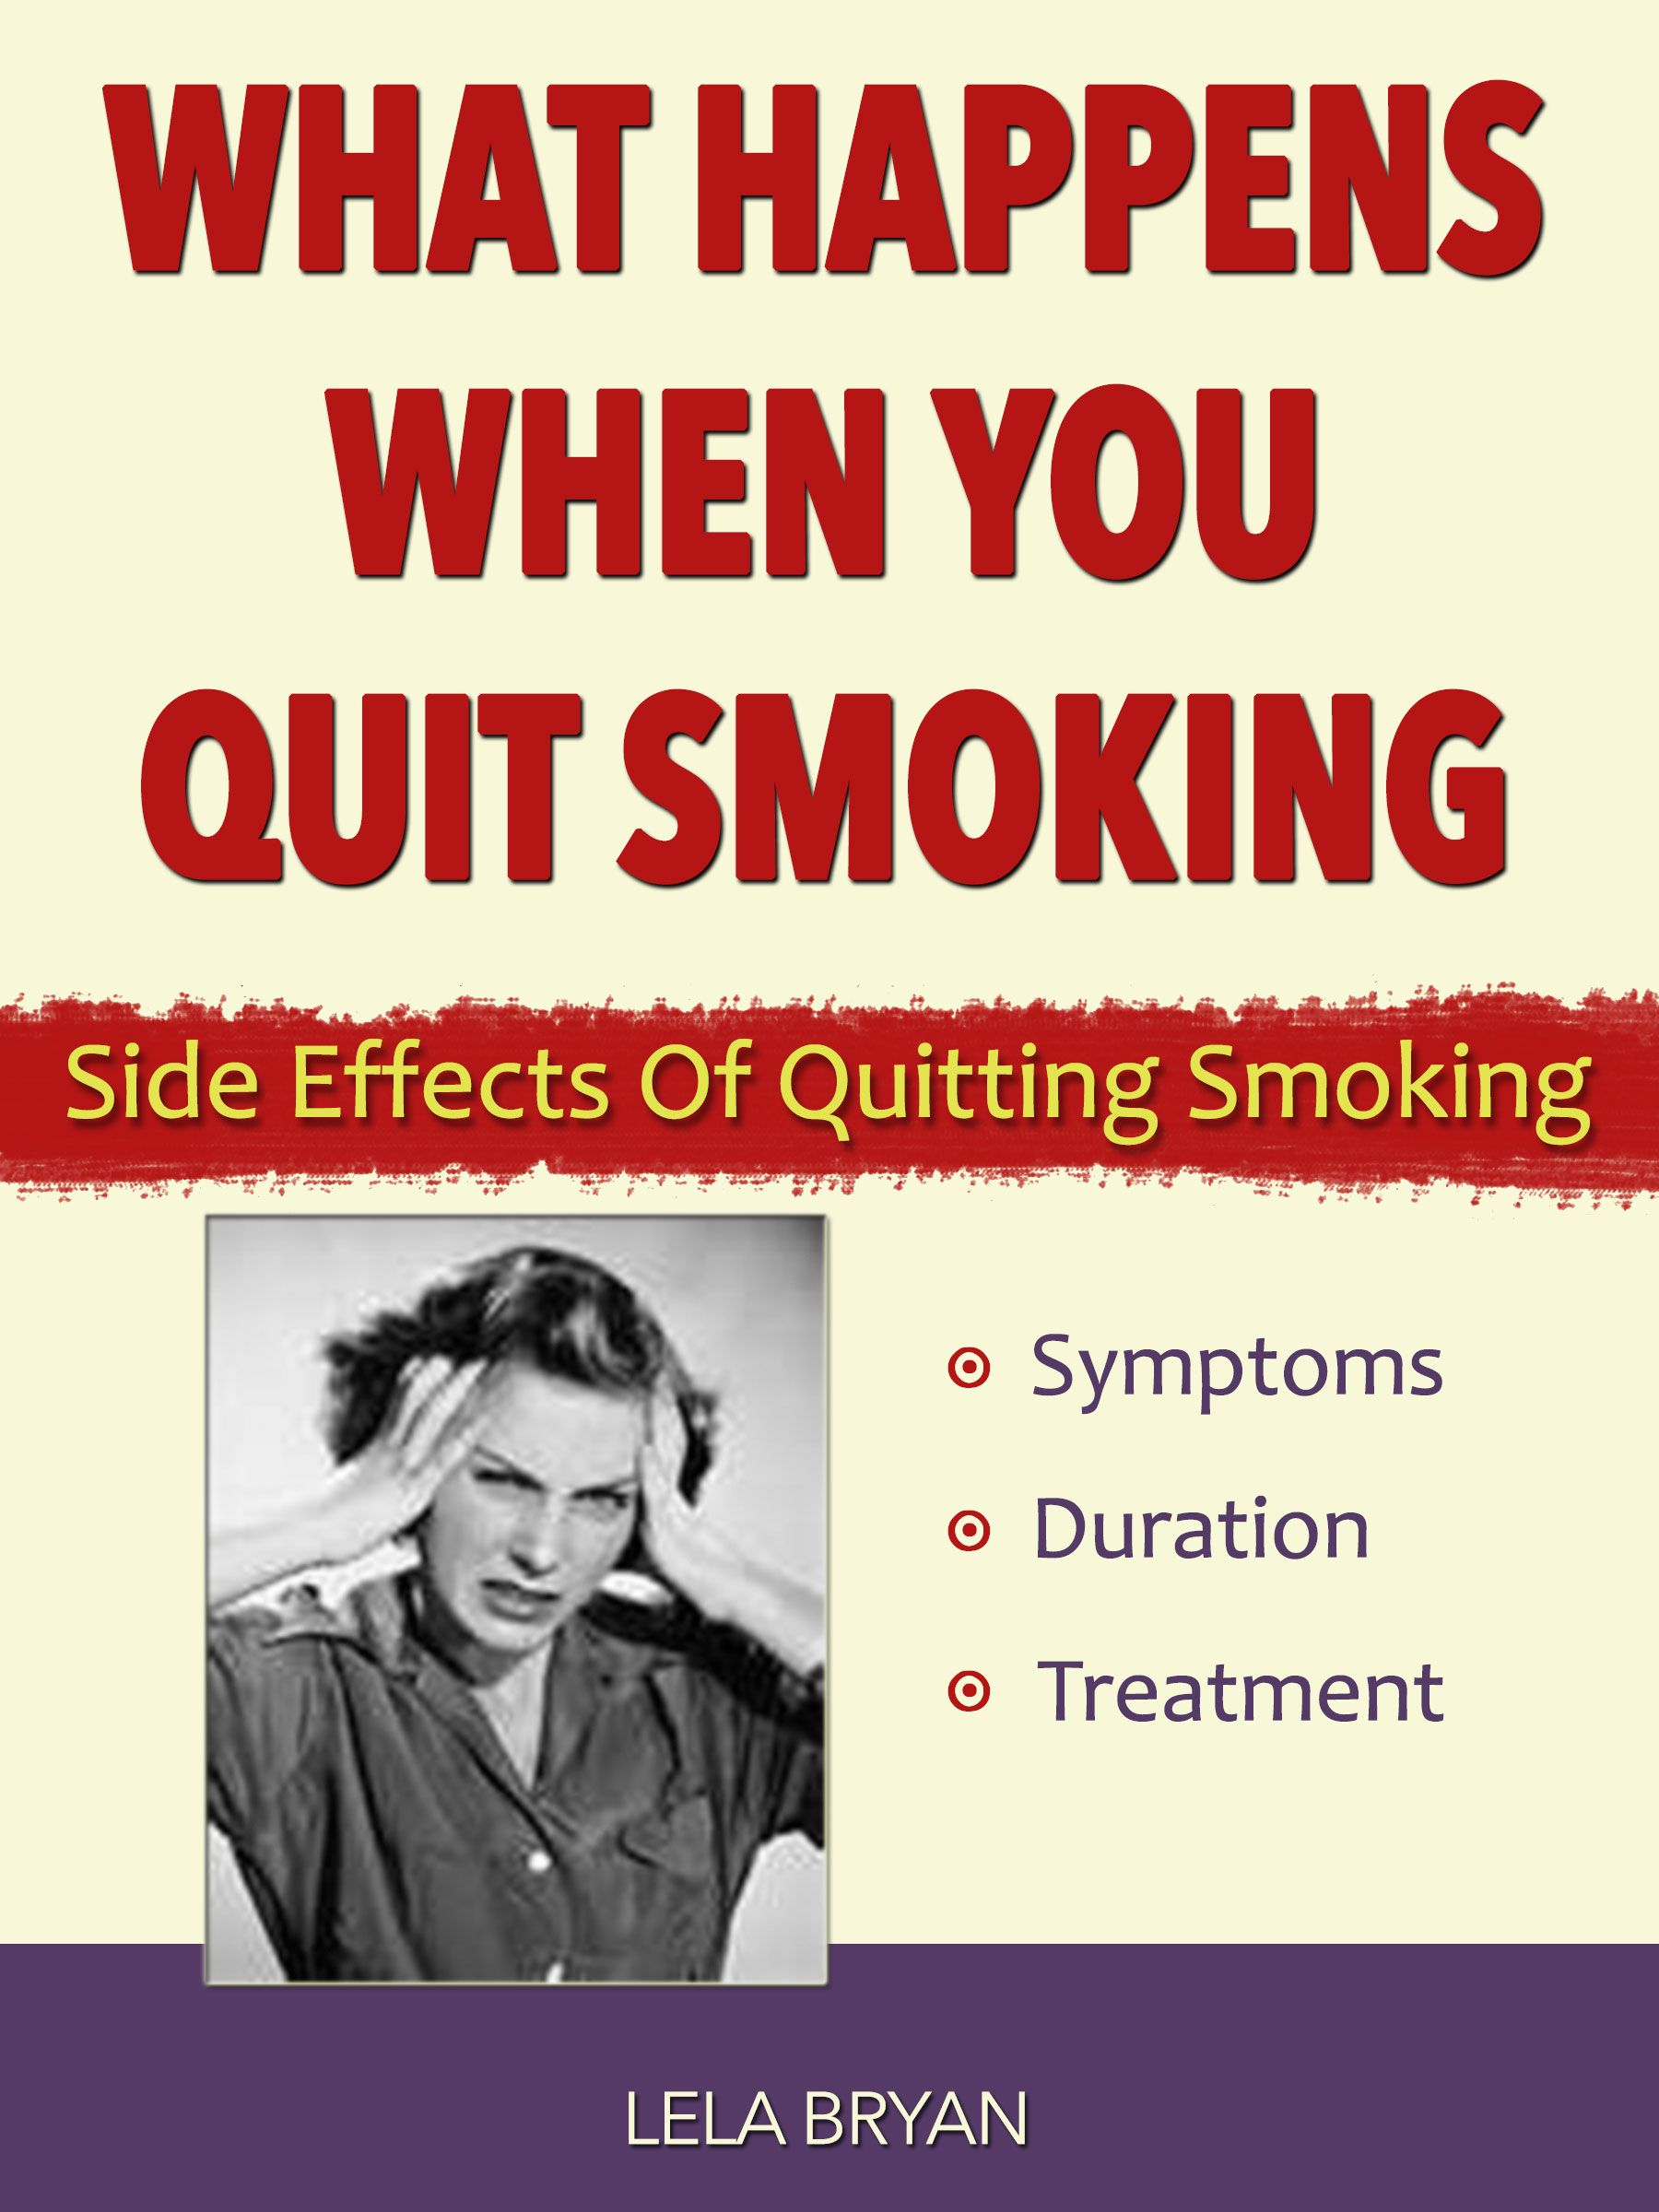 What Are the Side Effects of Quitting Smoking? | PlushCare